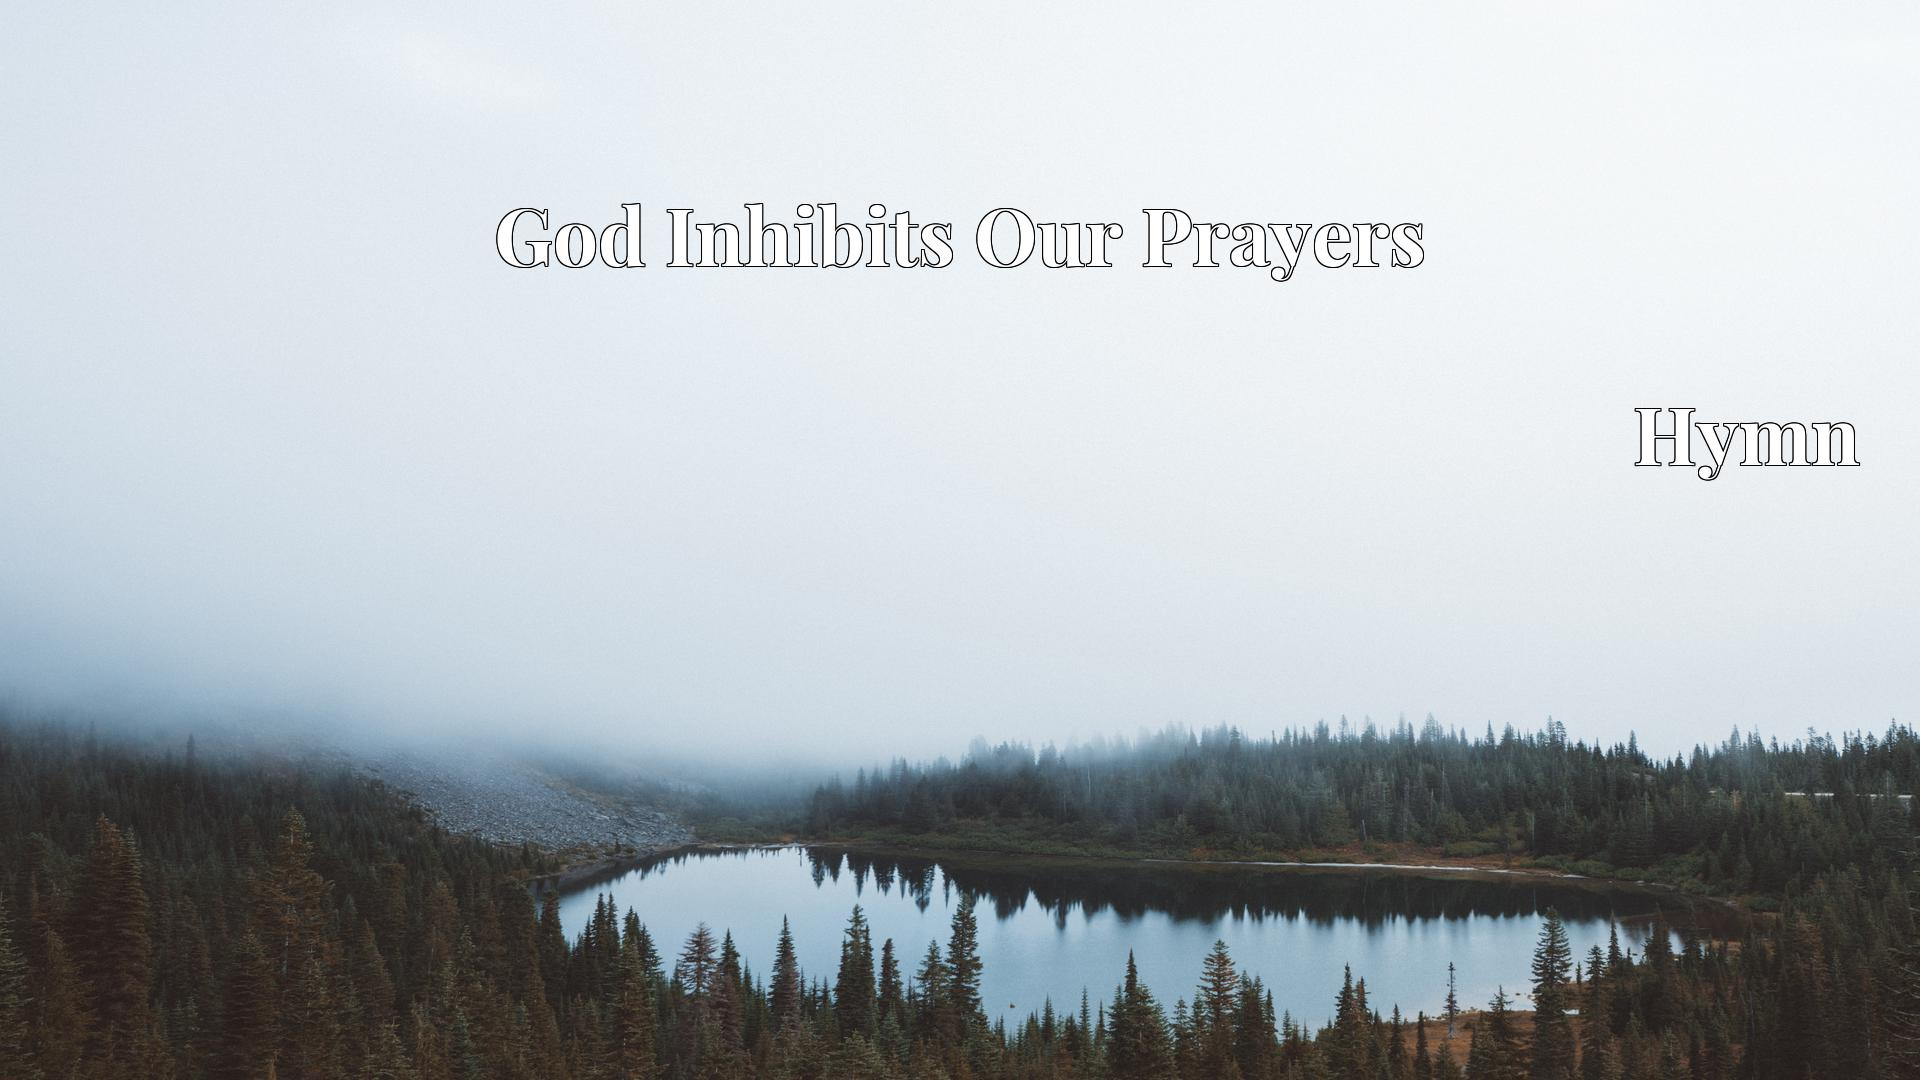 God Inhibits Our Prayers - Hymn